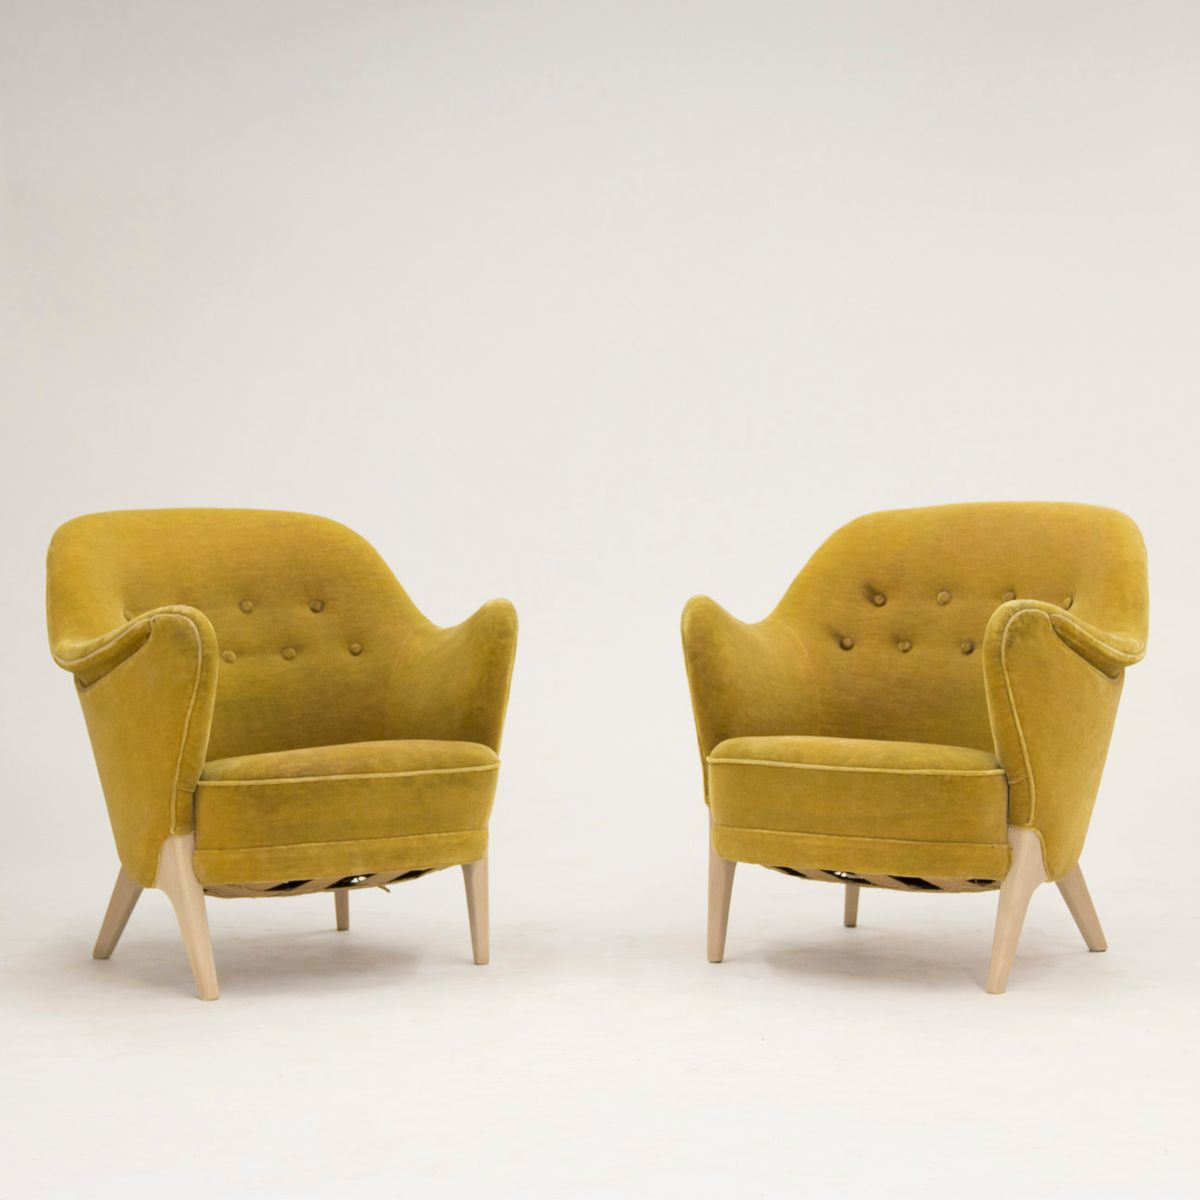 Danish Lounge Chairs By Arne Hovmand Olsen, 1950s, Set Of 2